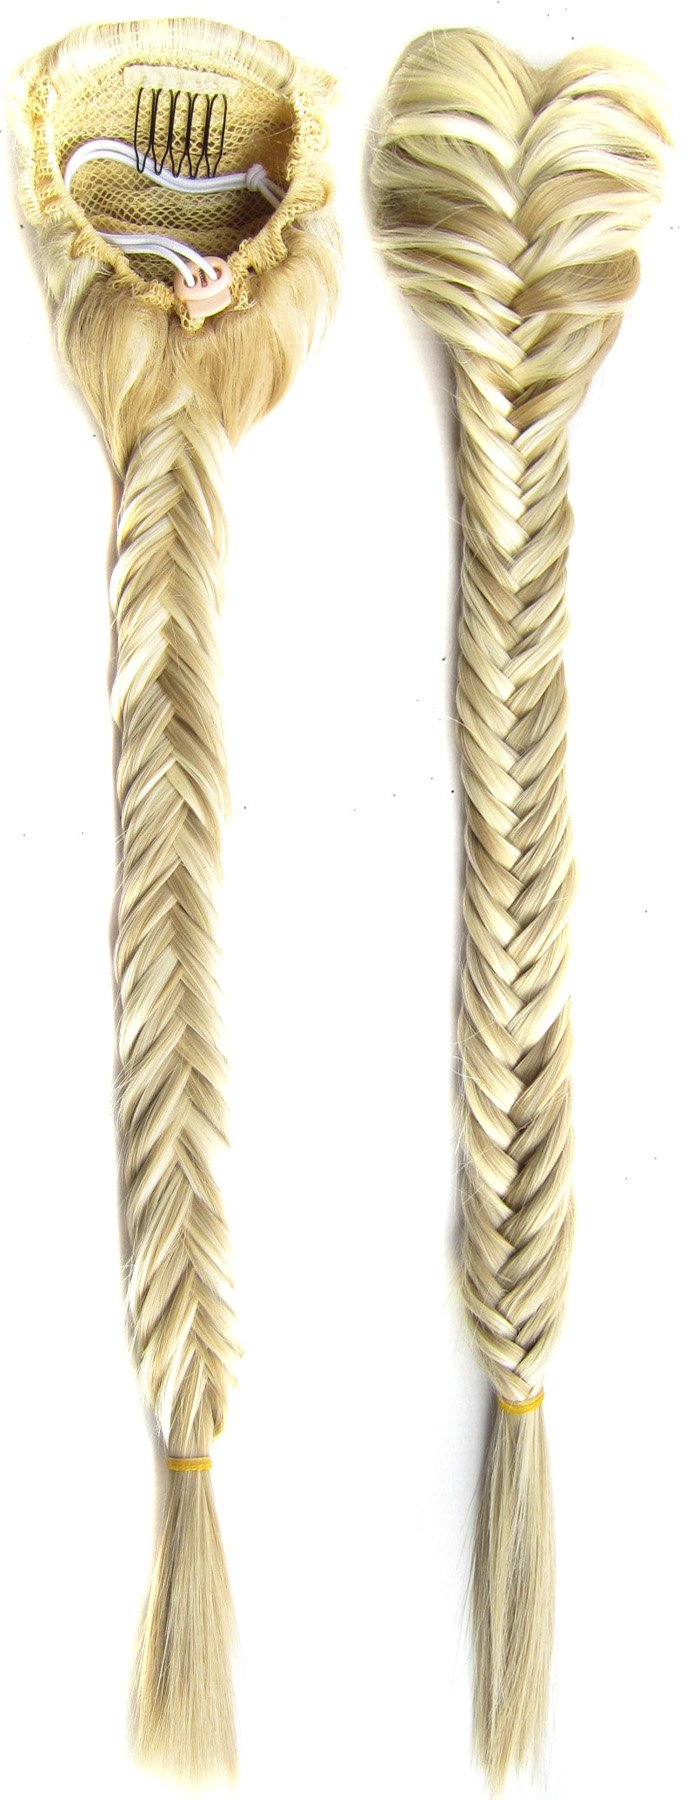 SWACC Long Fishtail Braid Ponytail Extension Synthetic Clip in Drawstring Ponytail Hairpiece (Beige/Blonde Mixed-F24/613)